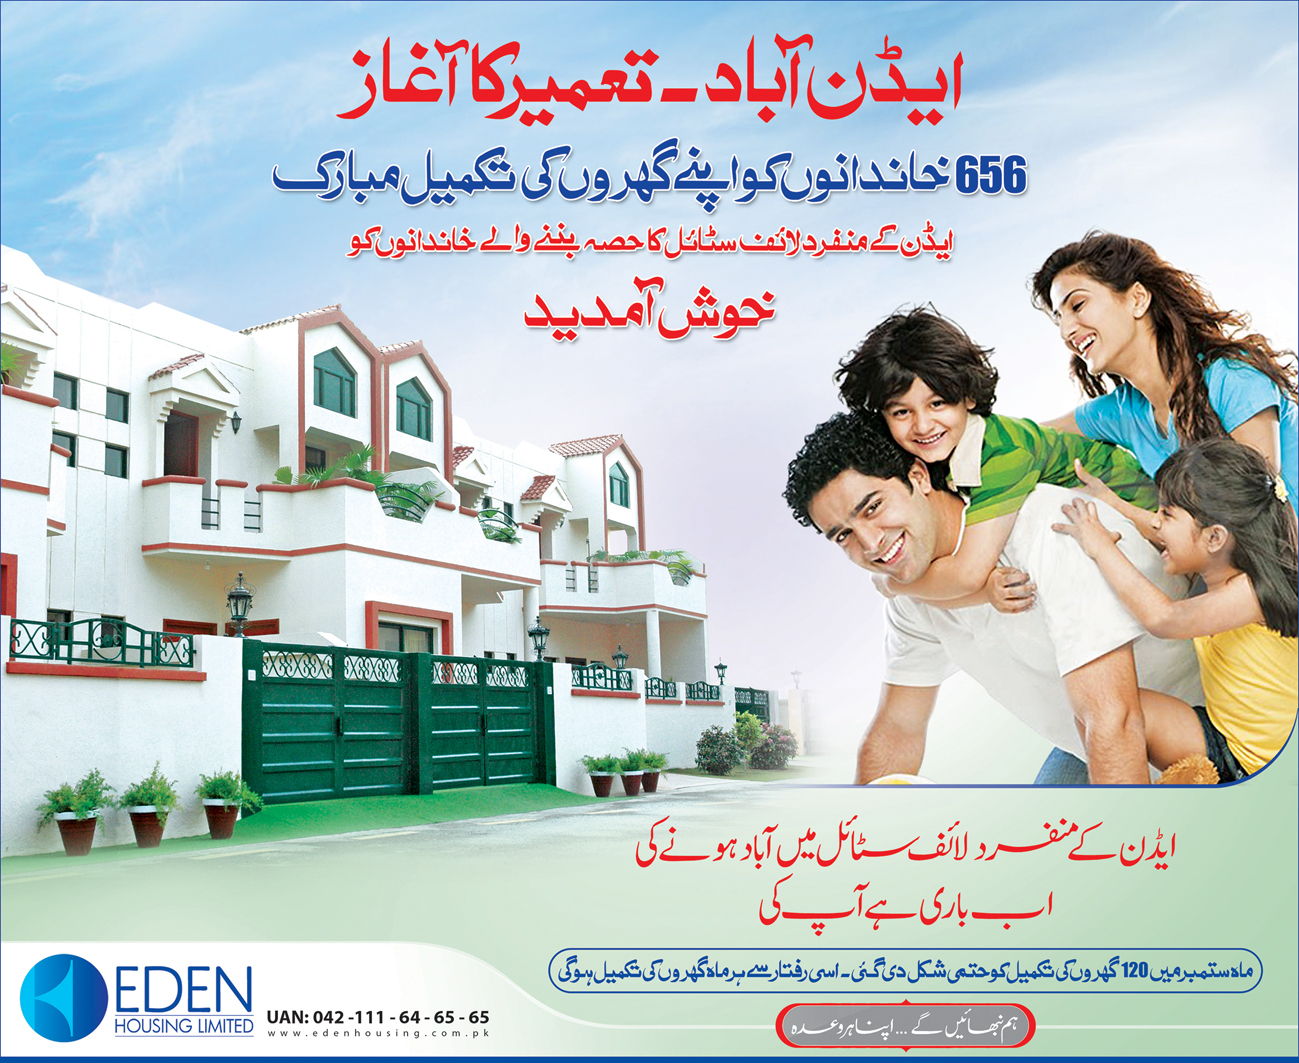 Oct-13-2012-Eden-Abad-Completion-of-Homes-Ad-27x8-Urdu-Colour-09-copy1